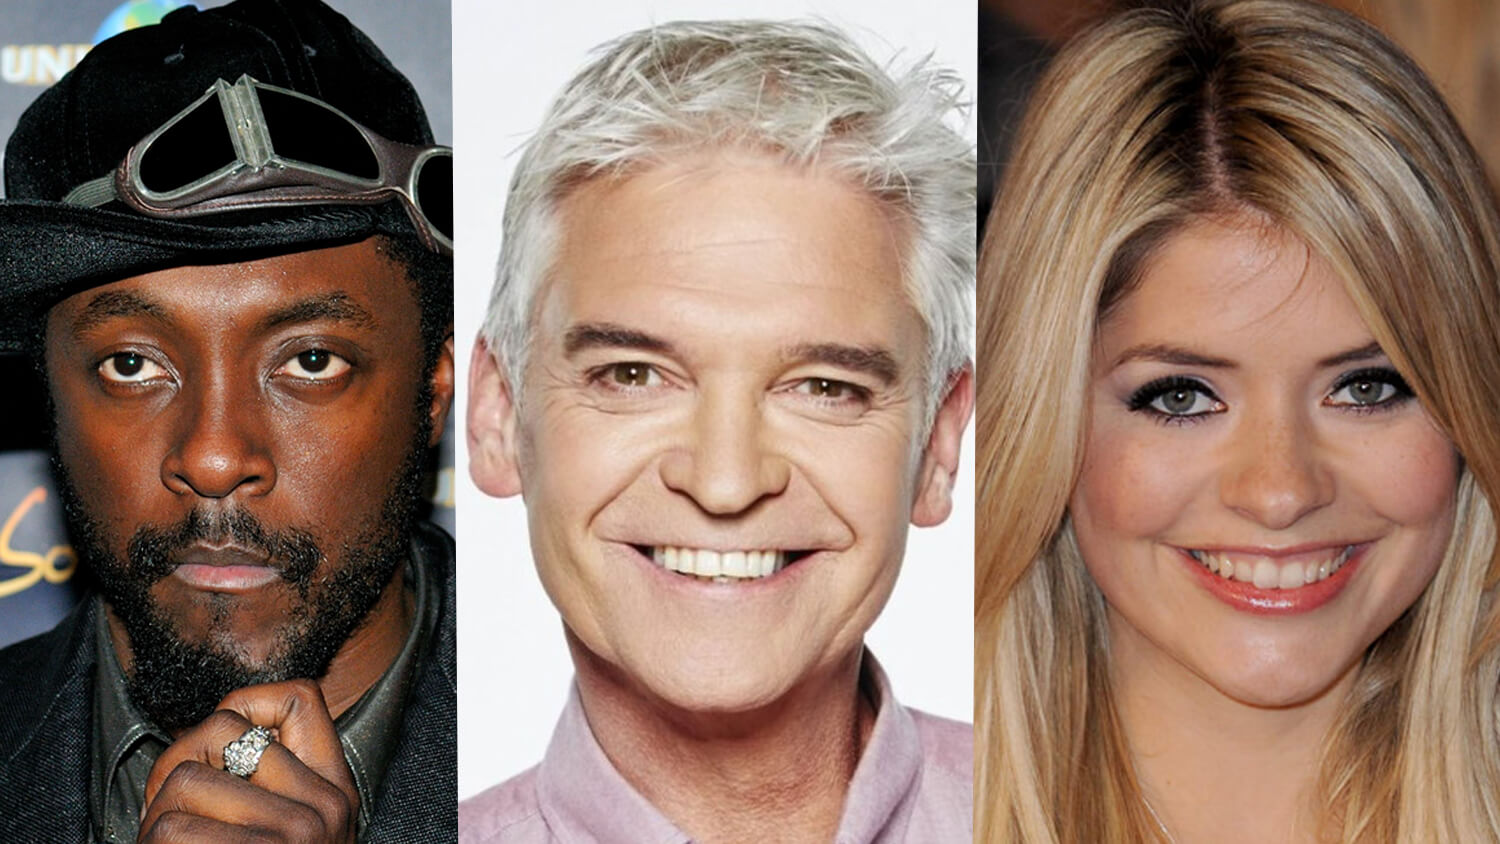 Musician Will.i.am Wows Holly Willoughby and Phillip Schofield with Vegan 'Black-Eyed Pea' Tacos on ITV's 'This Morning'